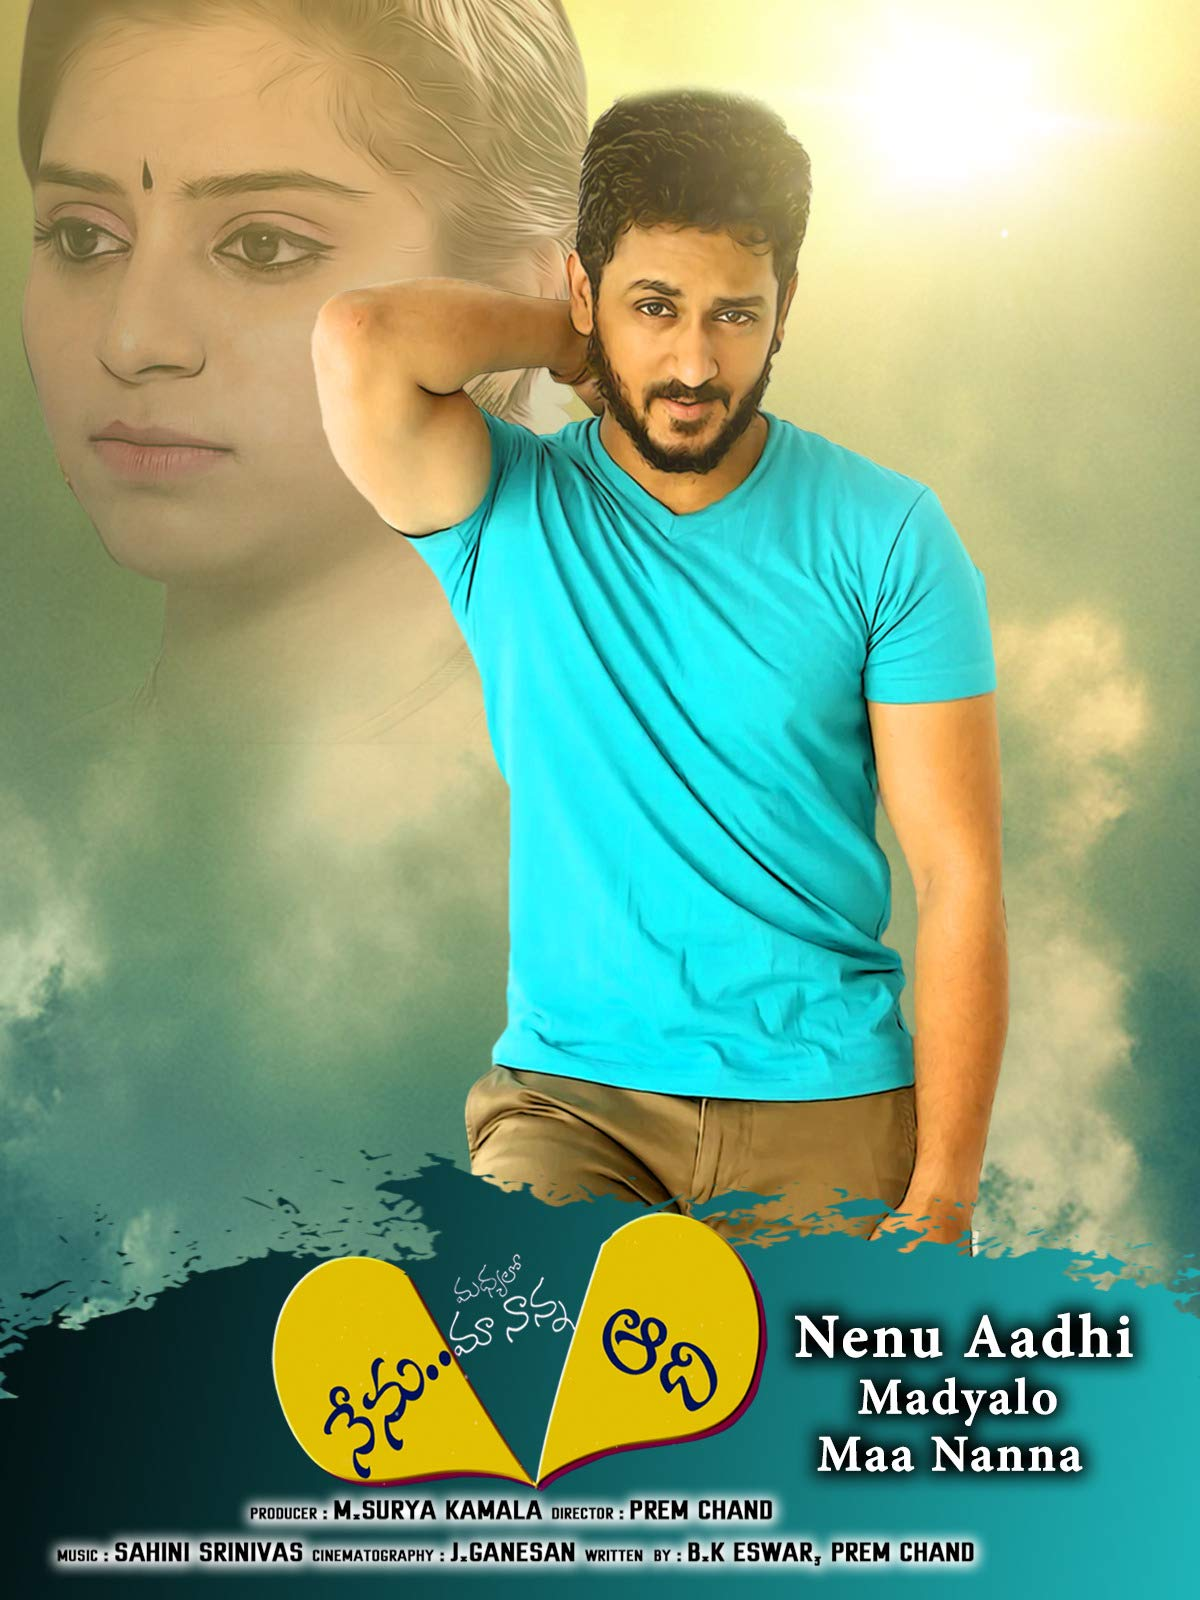 Nenu Aadhi Madyalo Maa Nanna on Amazon Prime Video UK